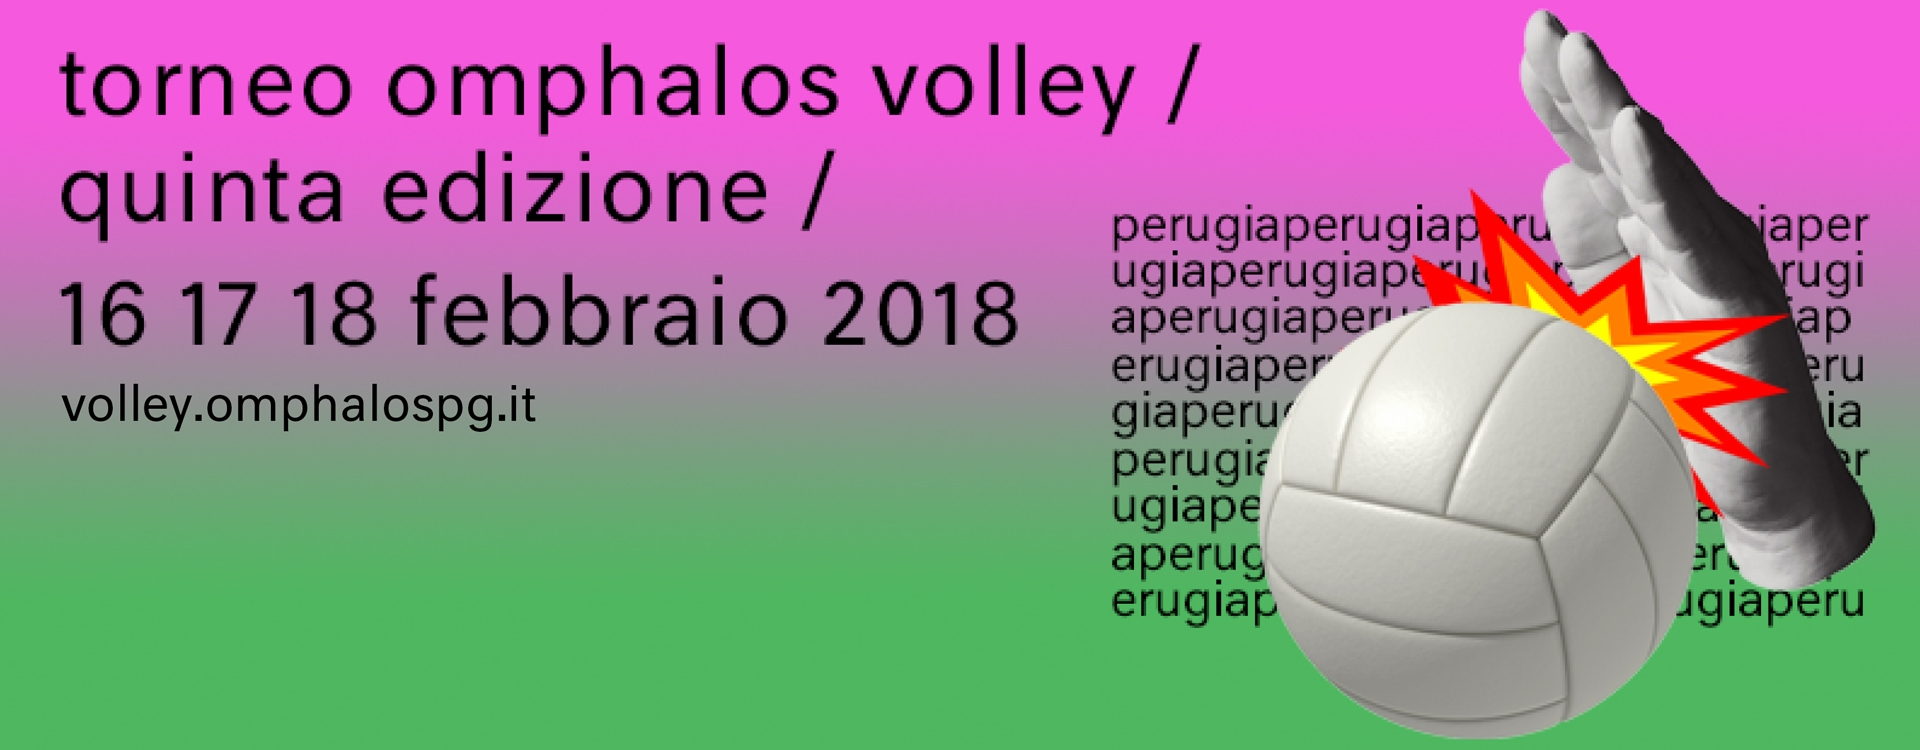 torneo volley perugia 2018